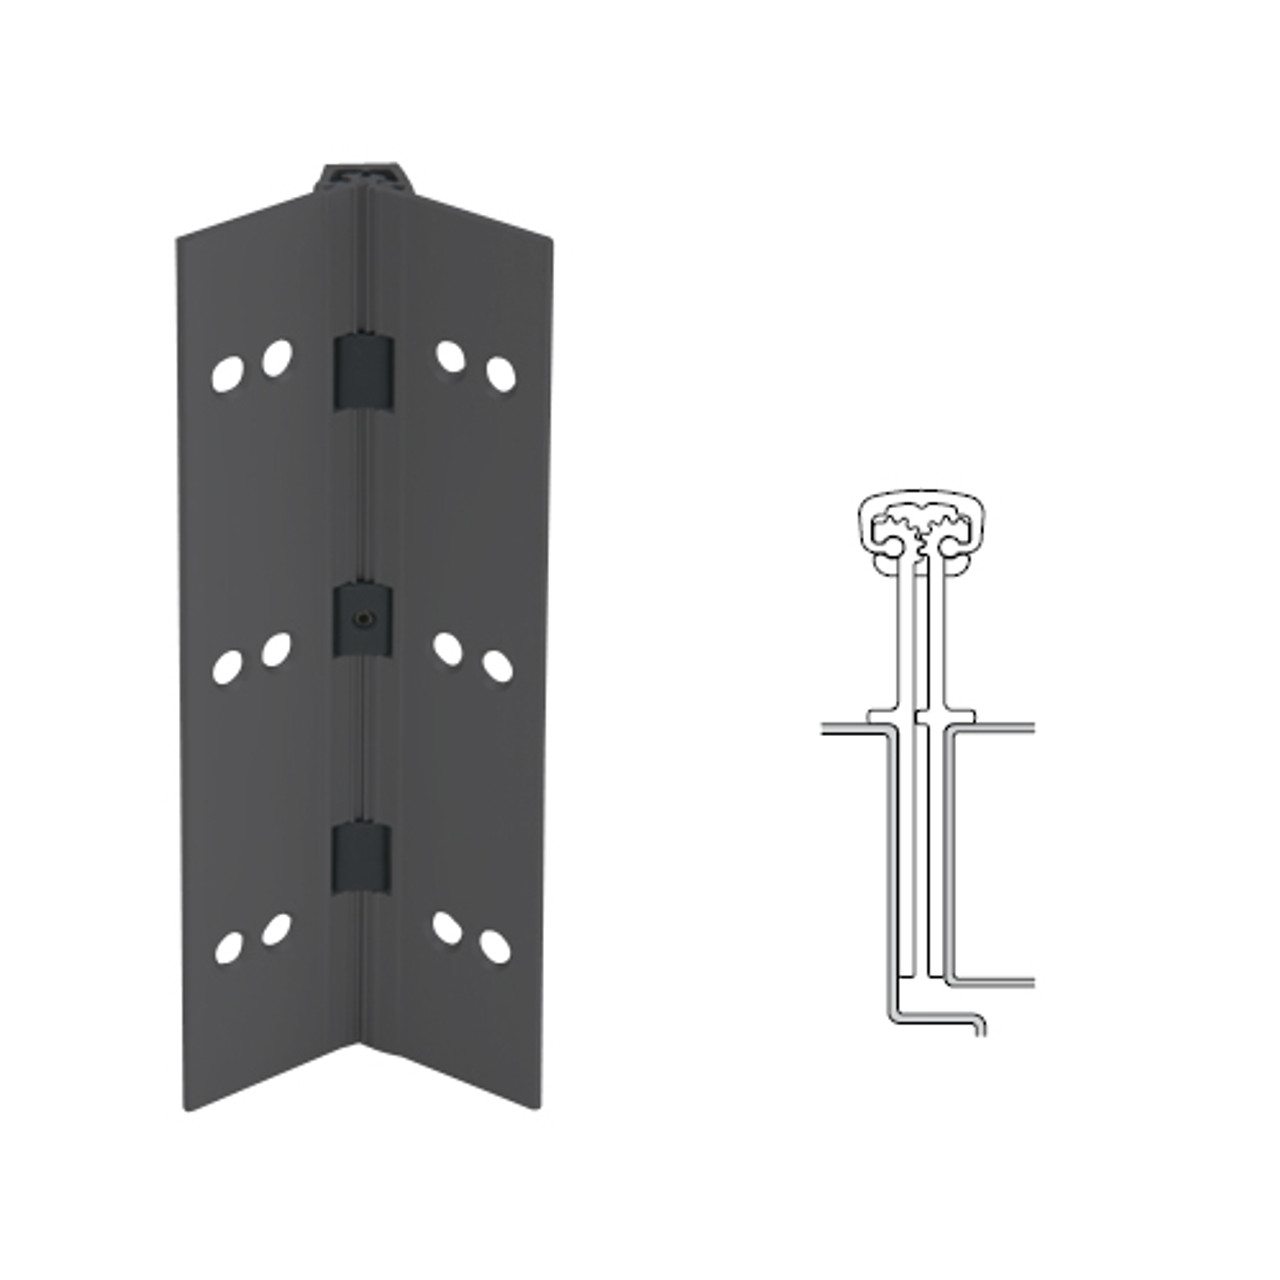 040XY-315AN-85 IVES Full Mortise Continuous Geared Hinges in Anodized Black